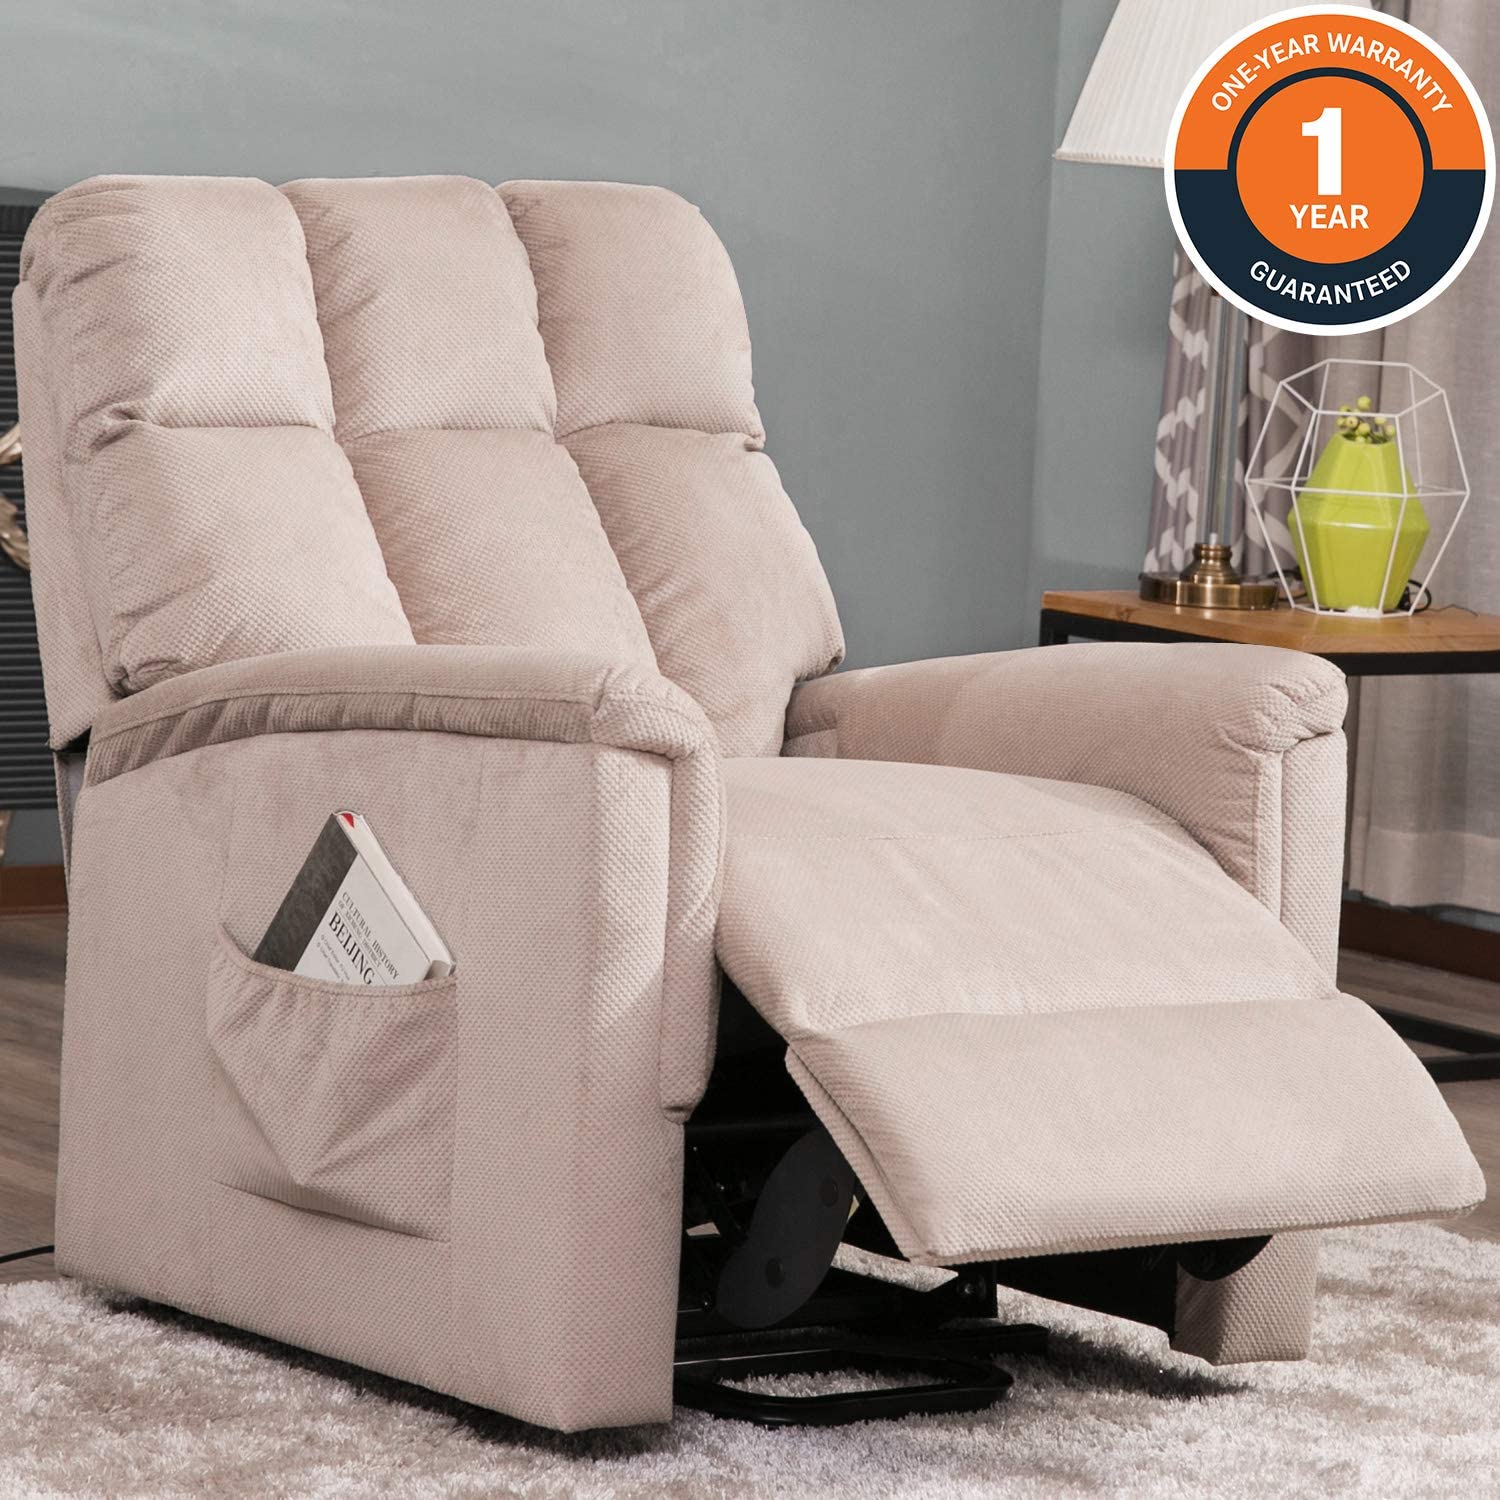 Harper & Bright Designs Lift Chairs Recliner